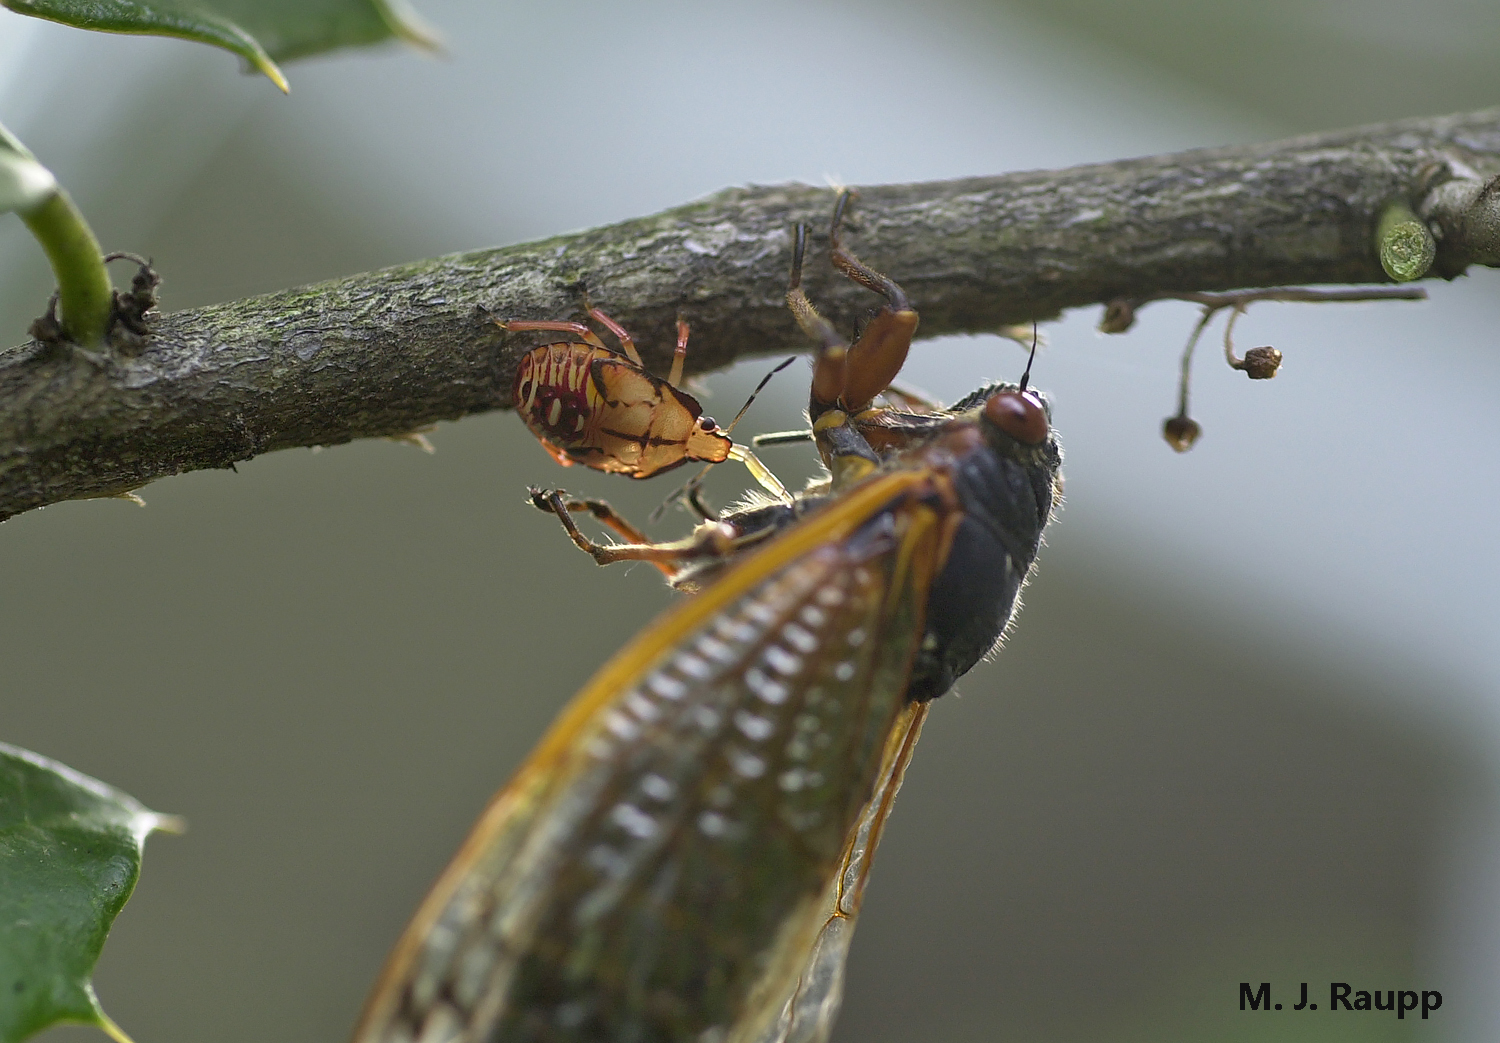 Exactly how the much smaller stink bug nymph paralyzes the much larger cicada remains a mystery. Note the beak of the stink bug inserted into the cicada to extract the cicada's blood.